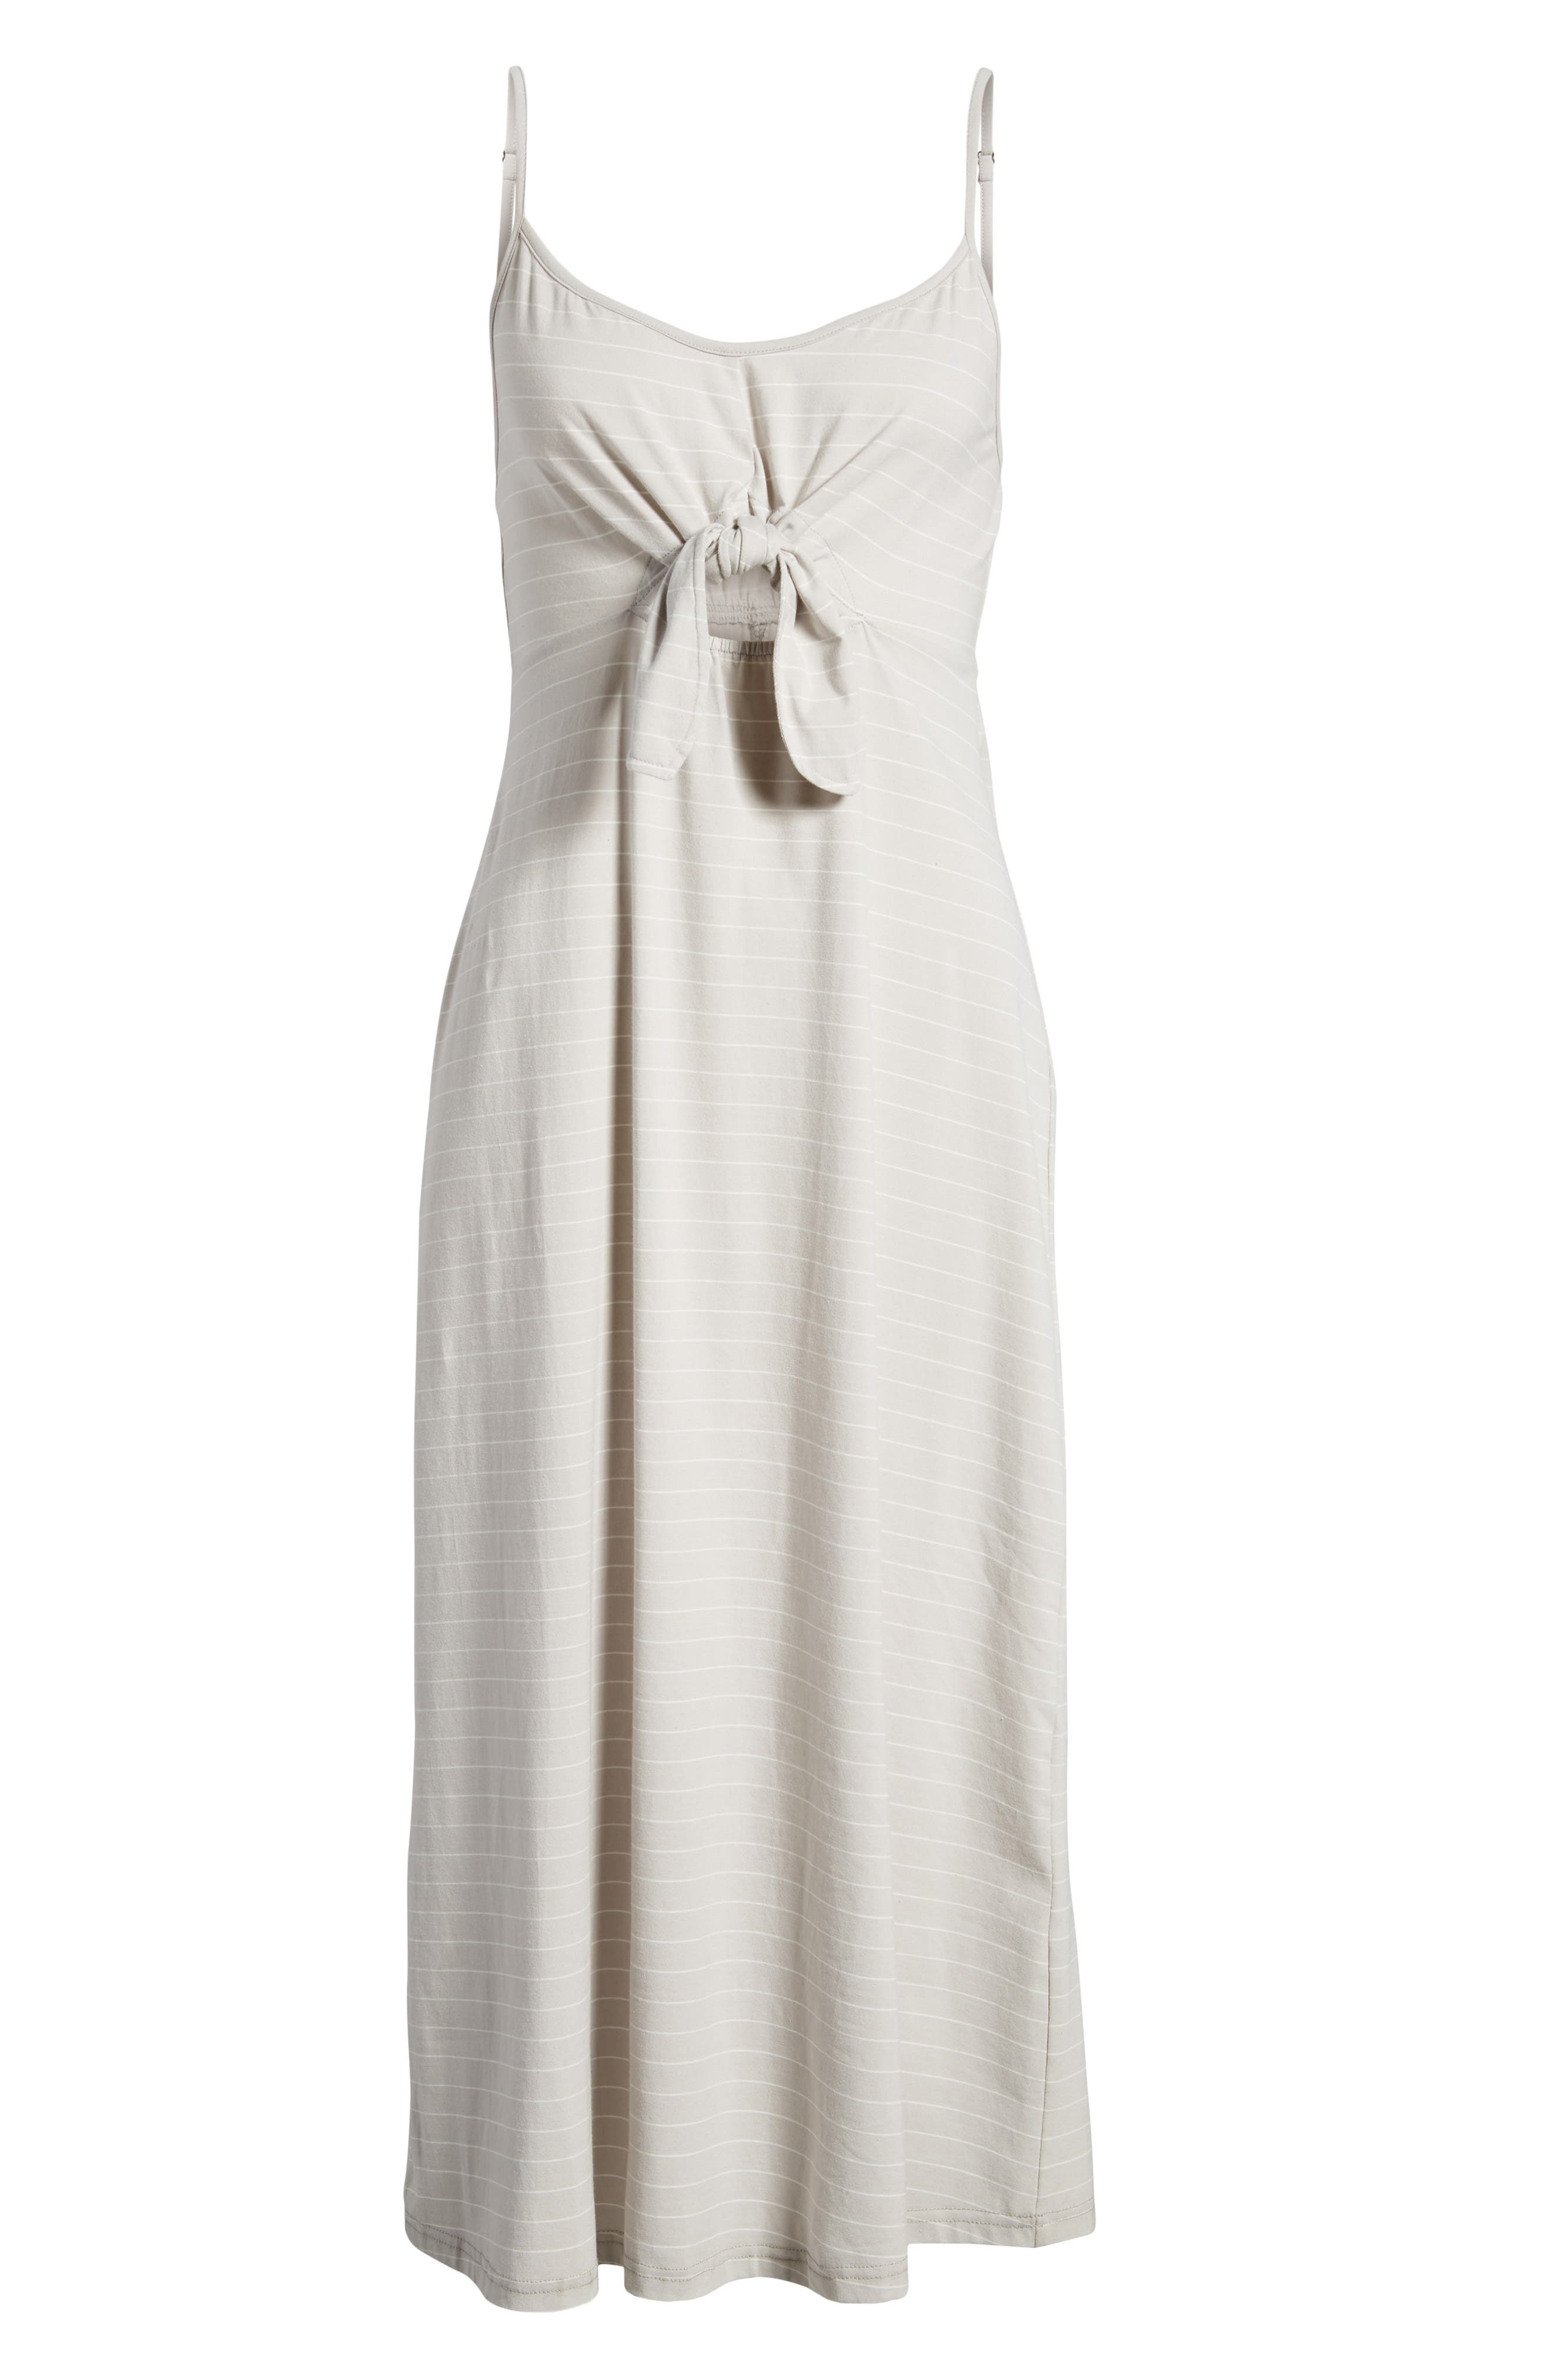 Suzanne Knot Front Dress,                             Alternate thumbnail 14, color,